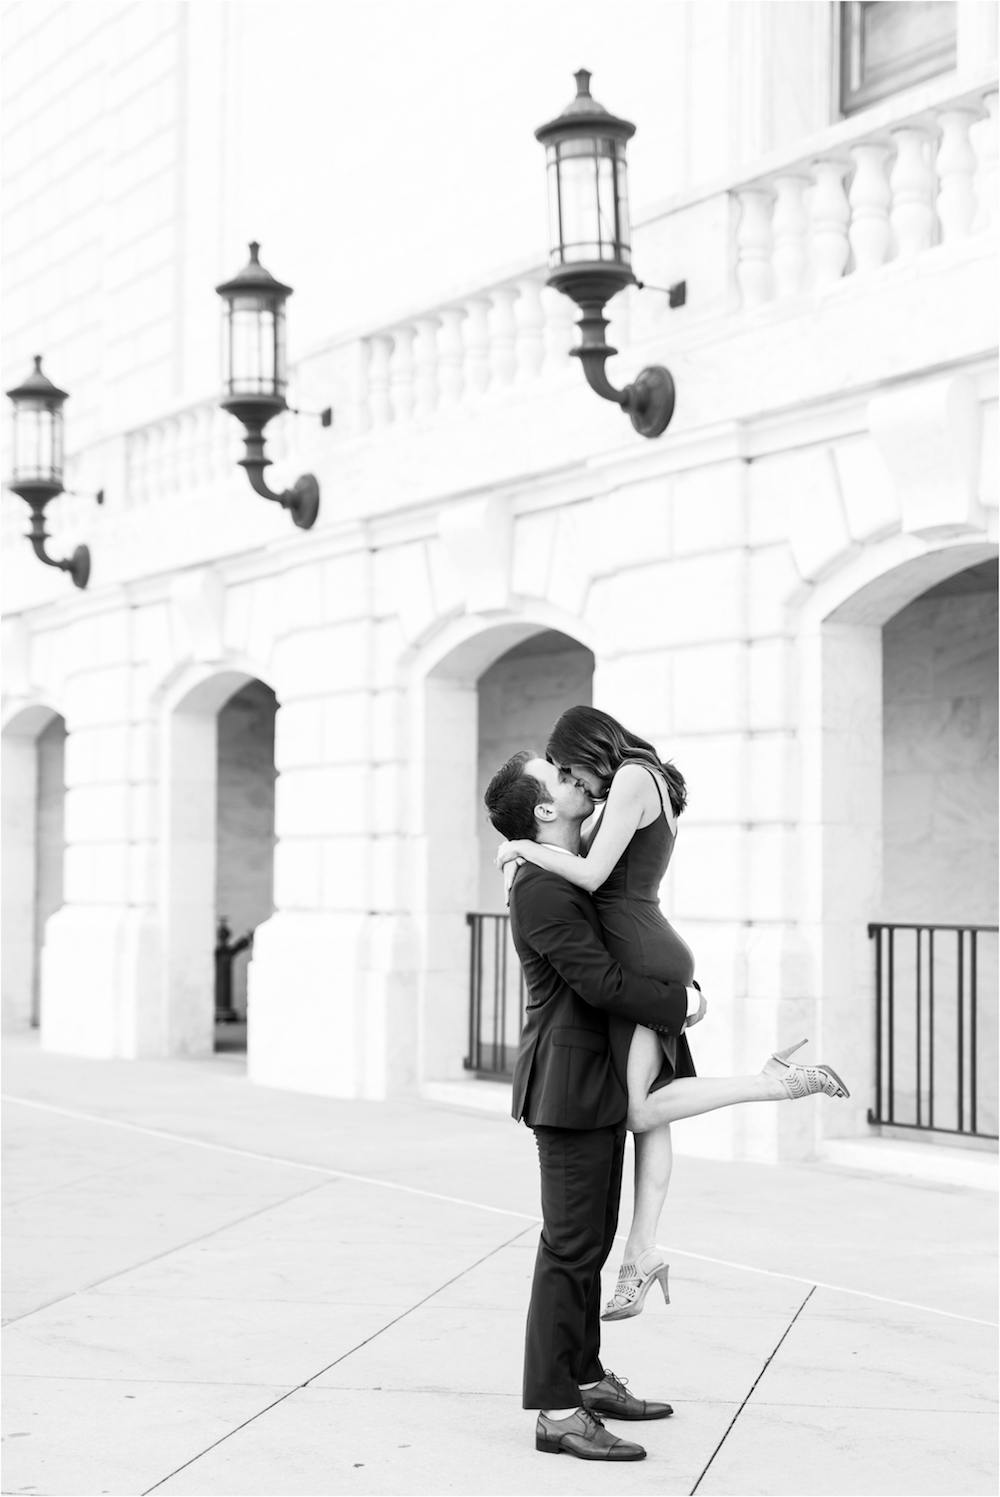 detroit-institute-of-arts-marble-elegant-gold-wedding-engagement-photo-38.jpg